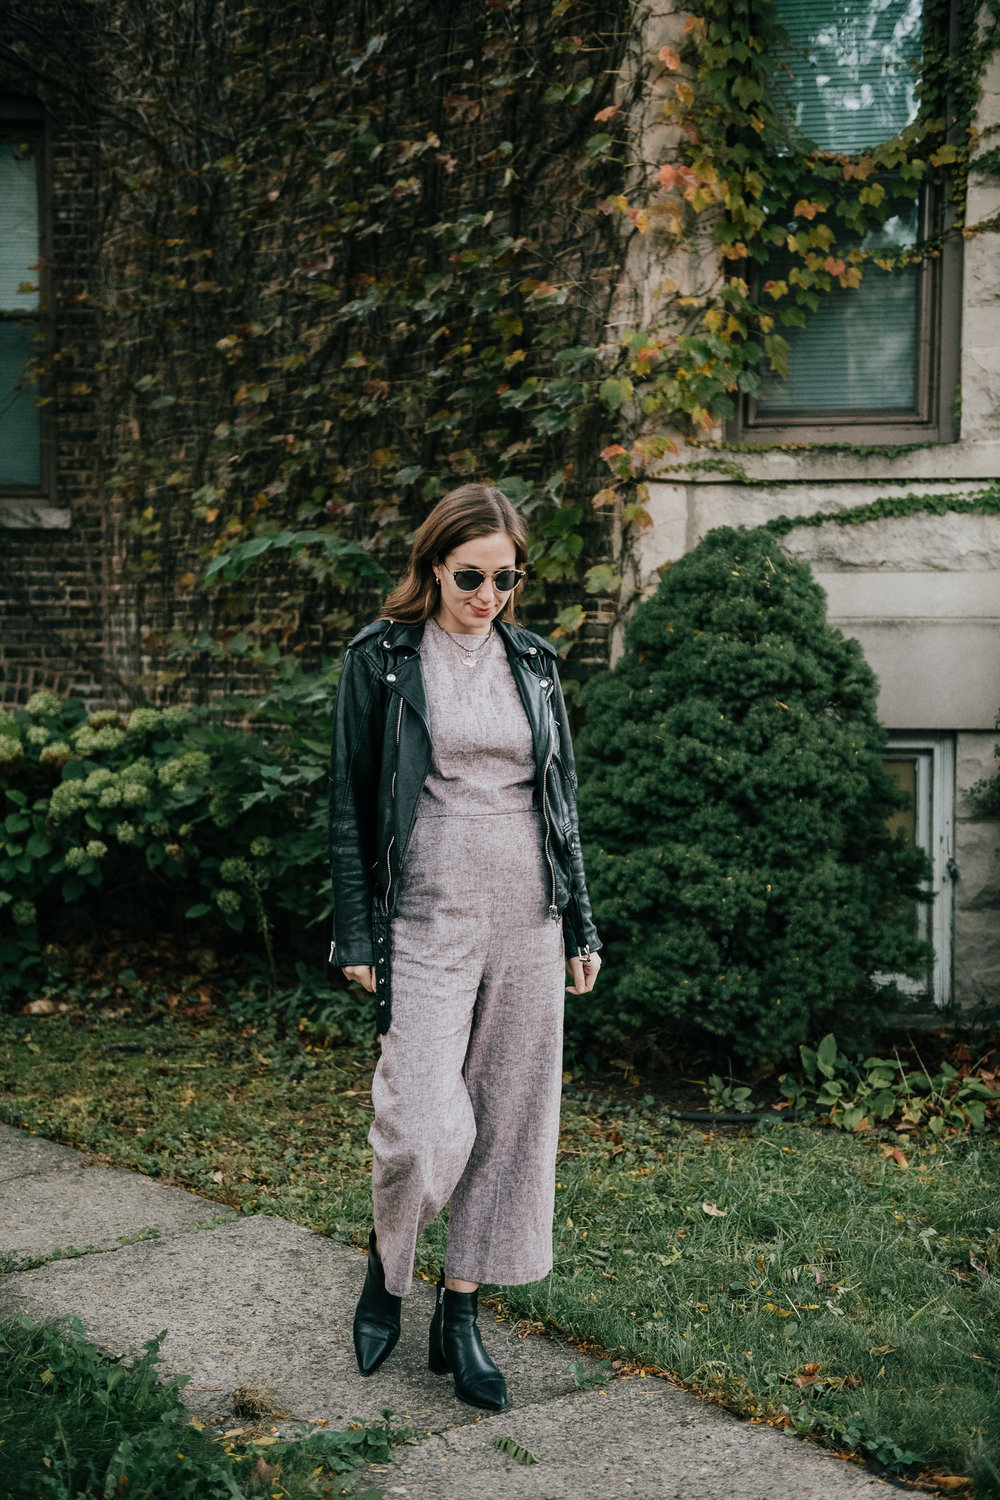 302b4e2ec4ee Jumpsuit for fall - A Week Of Ethical Outfits With Heart With Carly Gerber  From Hippie